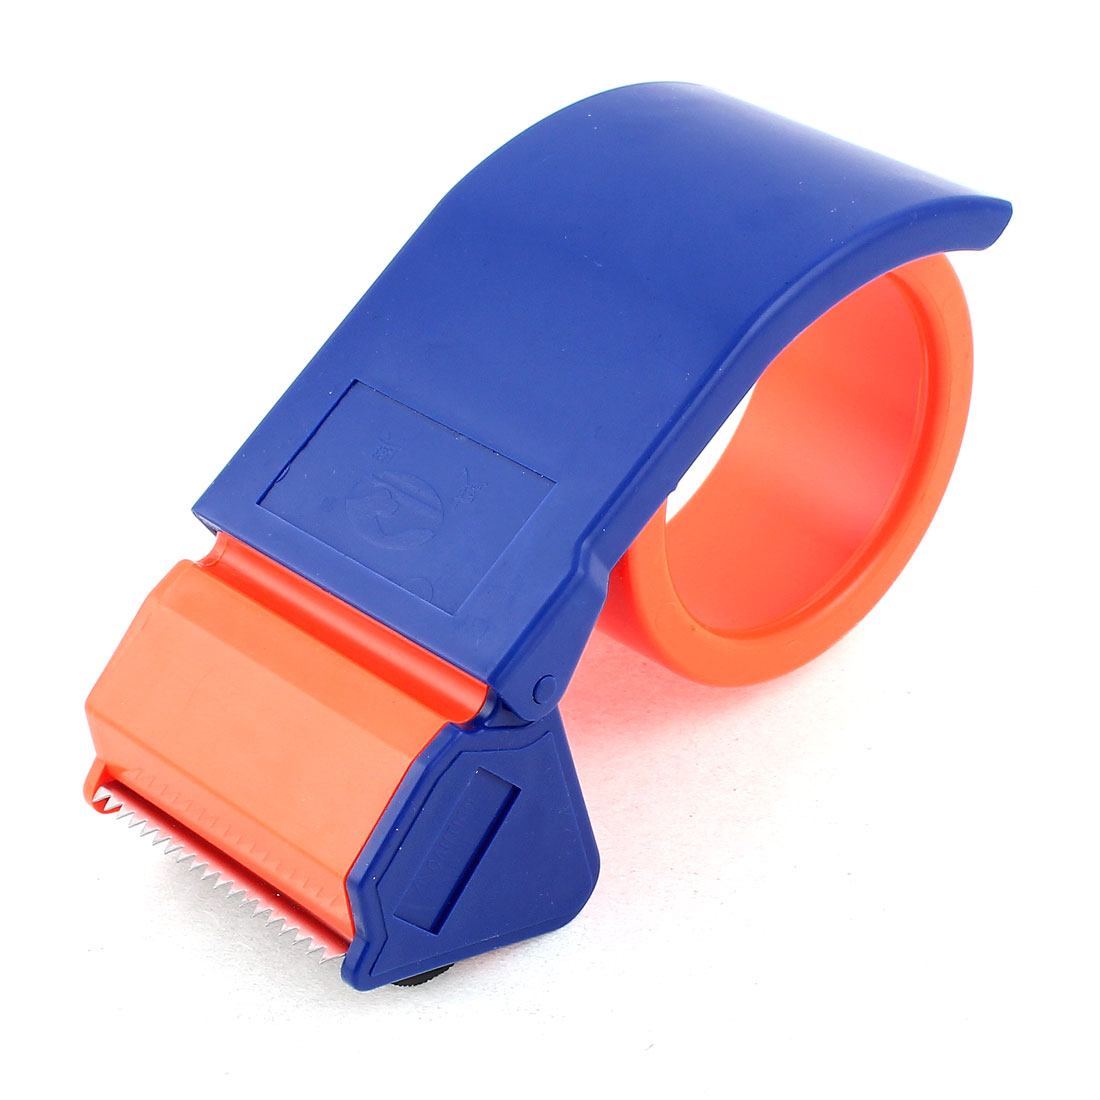 Portable Package Tool Adhesive Tape Dispenser Cutter Orange Red Blue